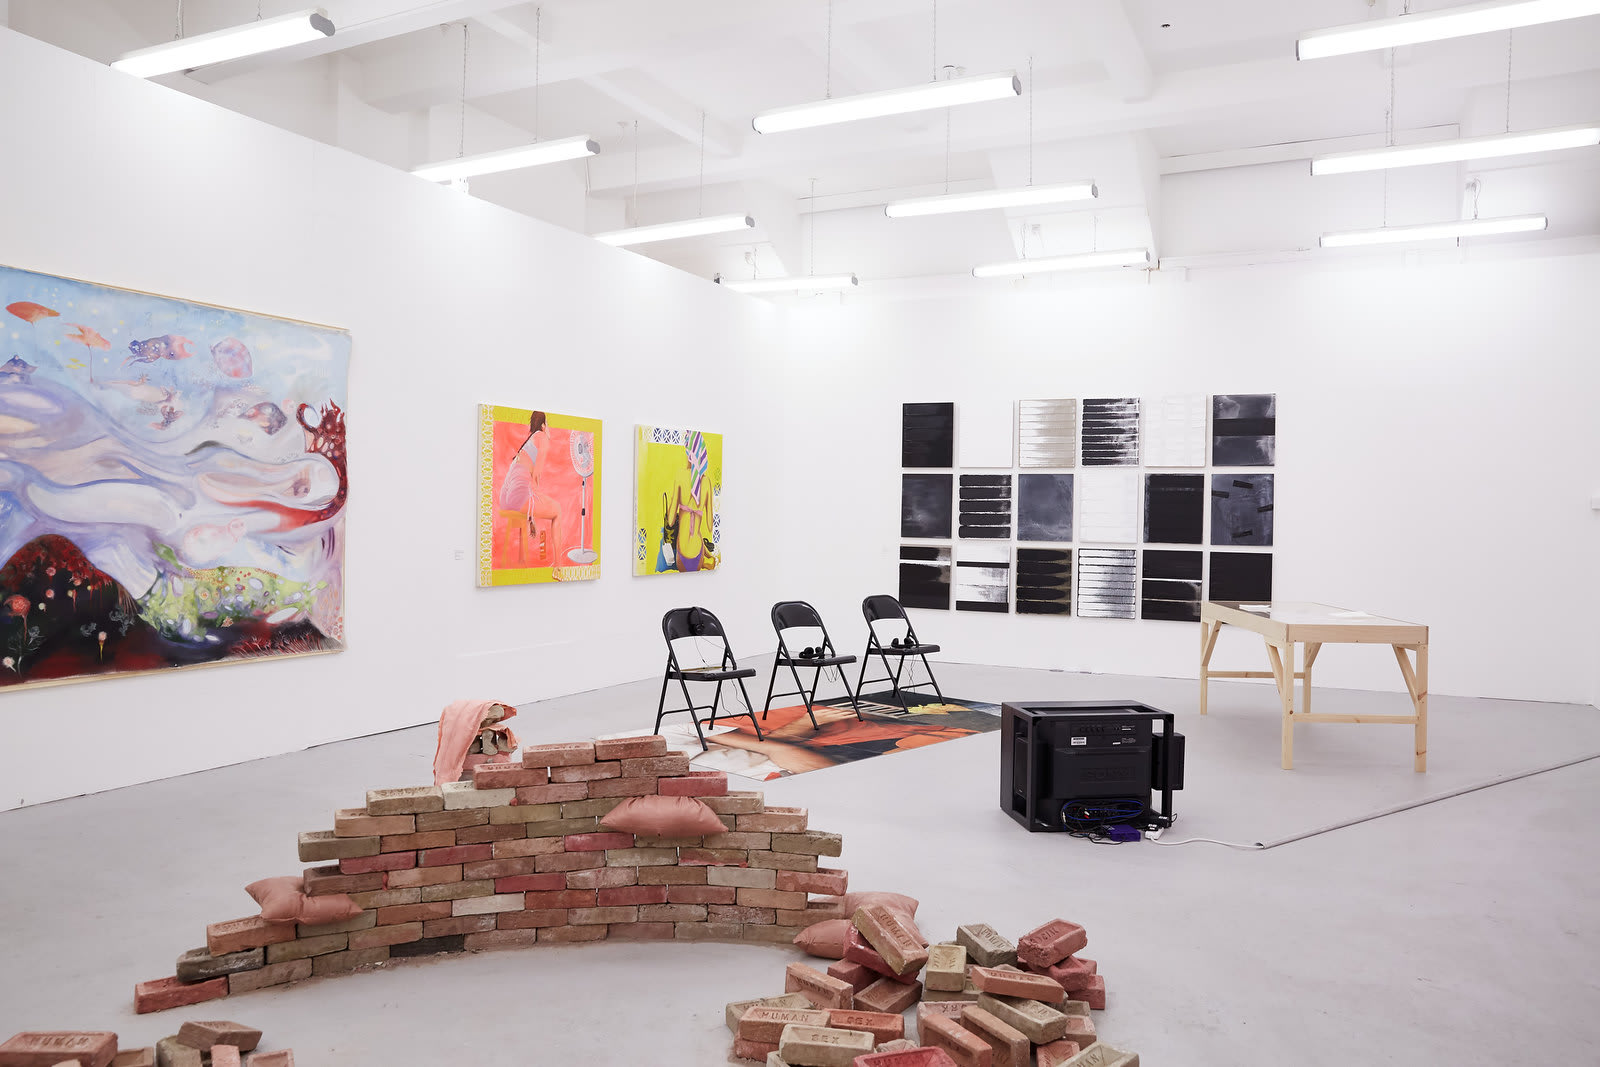 camberwell-college-of-arts-ba-painting-summer-show-2019.jpg